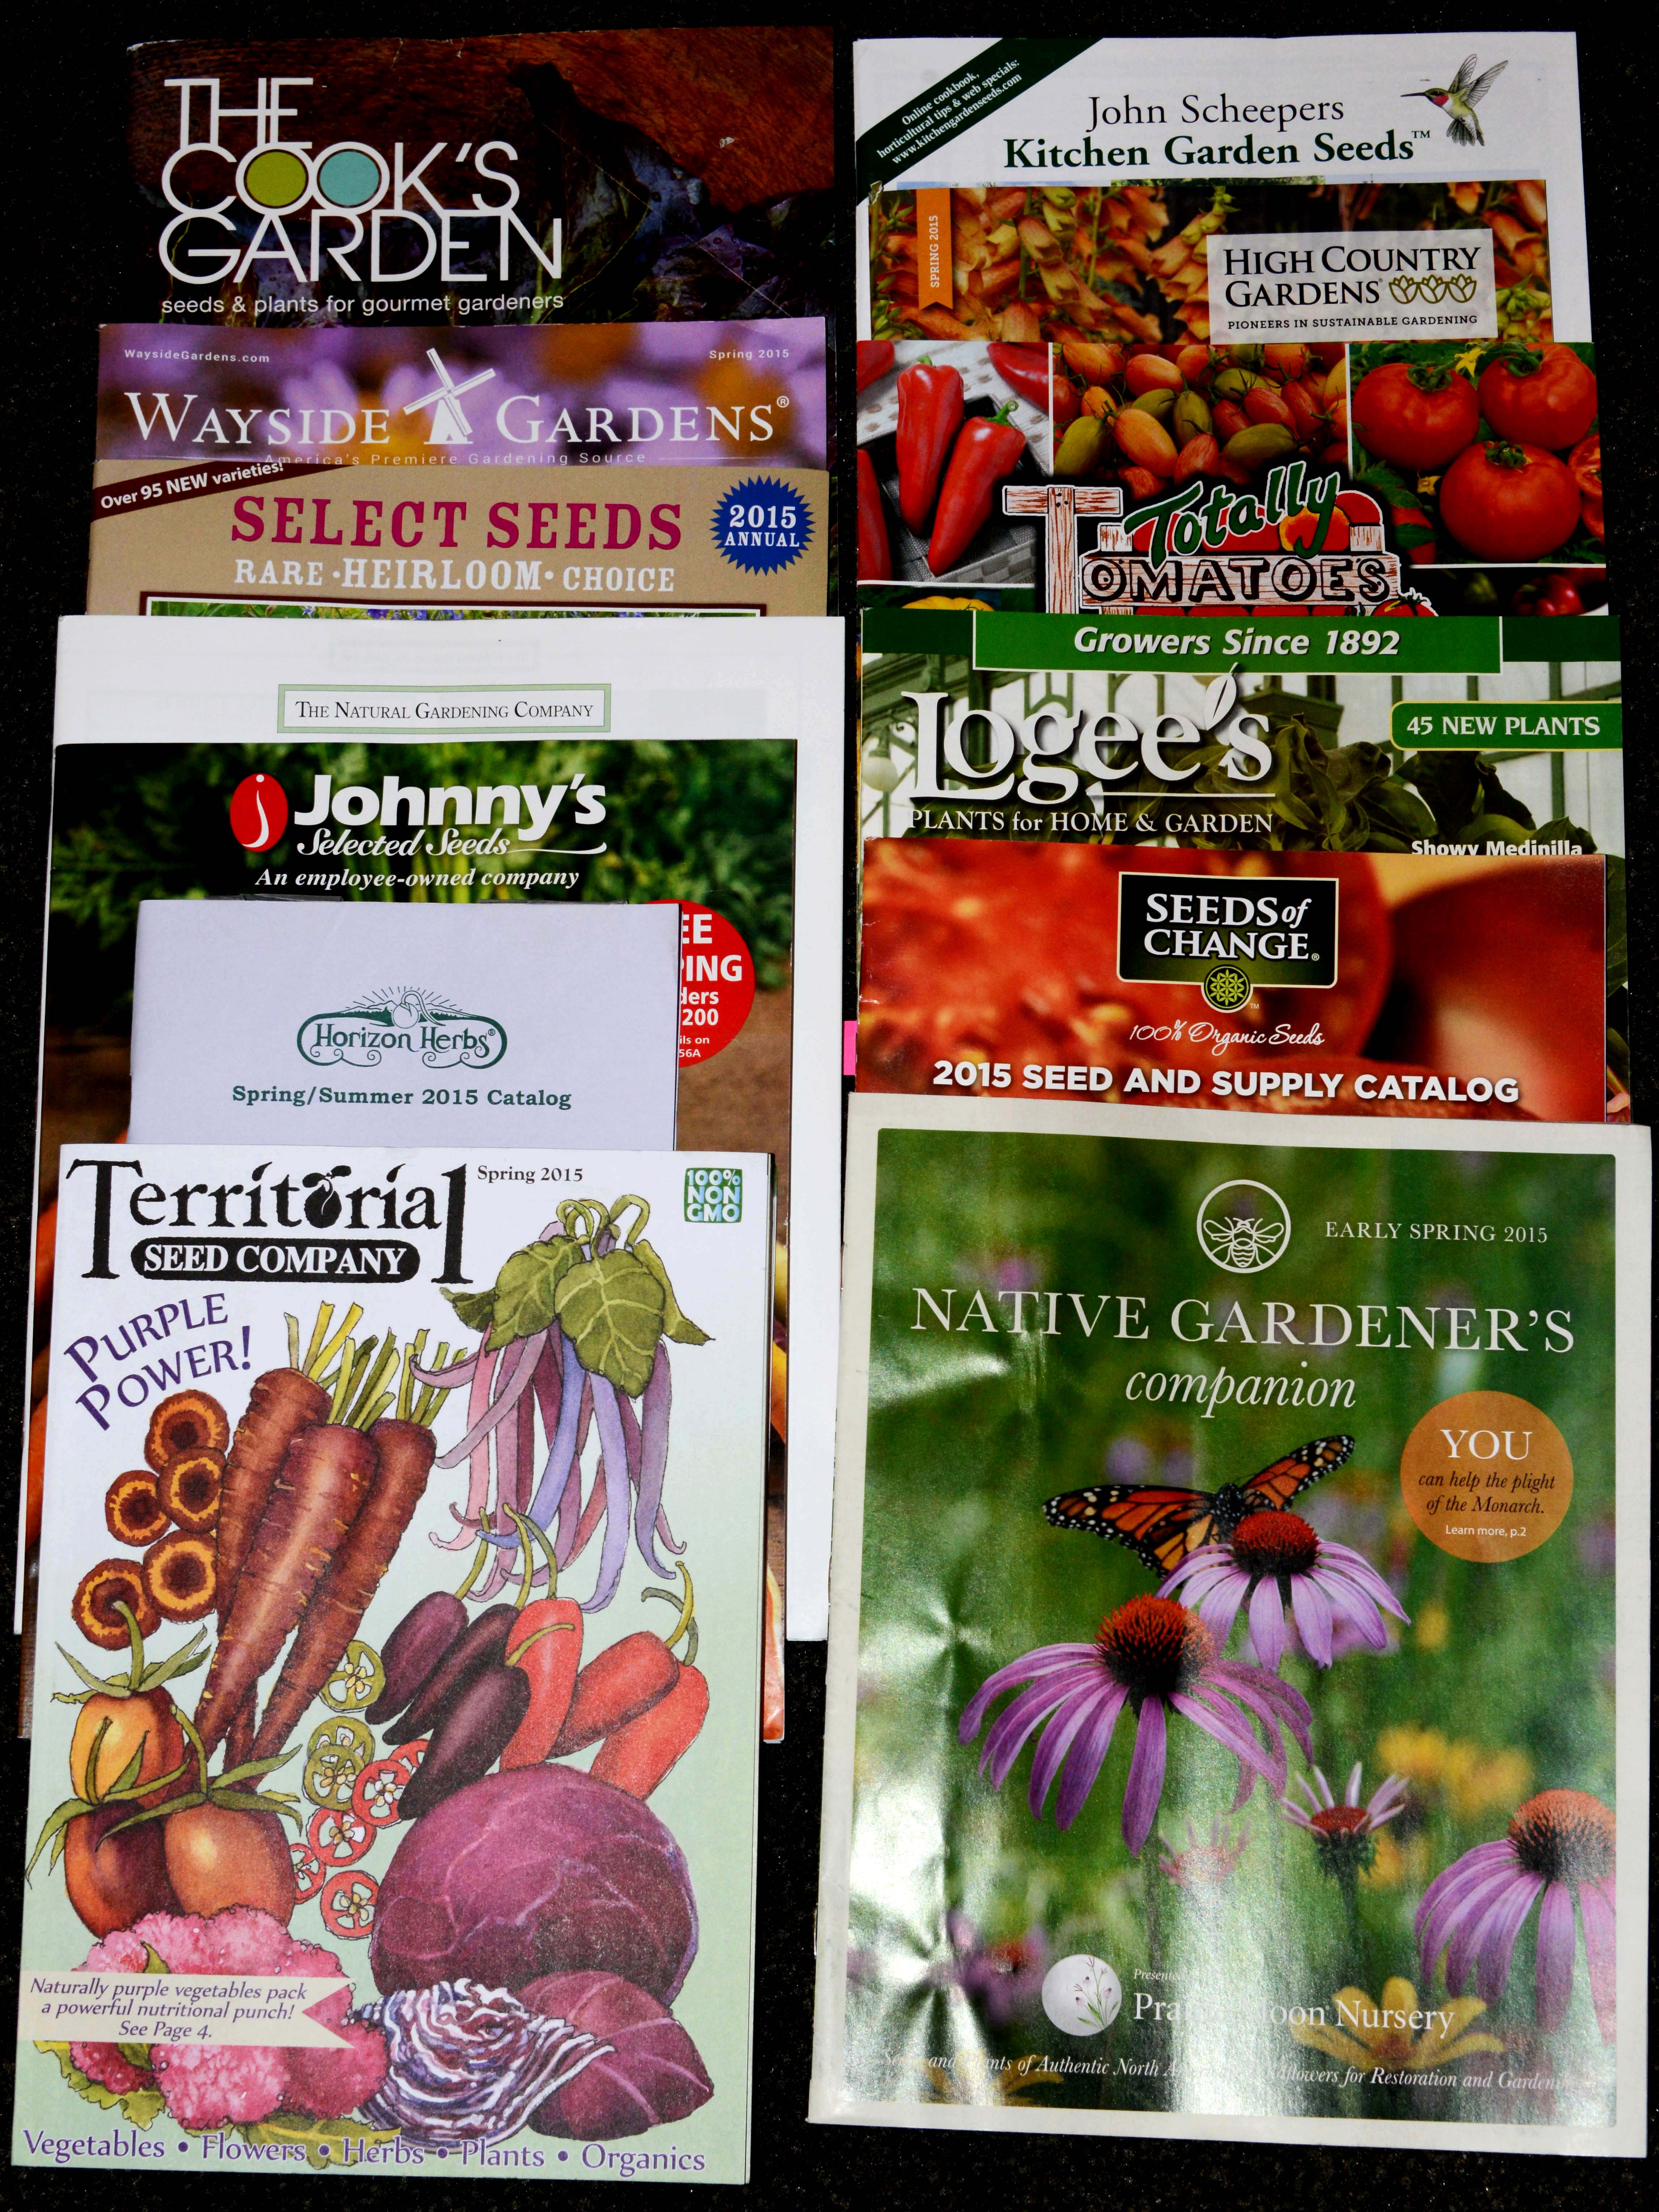 John Scheepers Kitchen Garden Seeds Flowers Petals And Wings Page 4